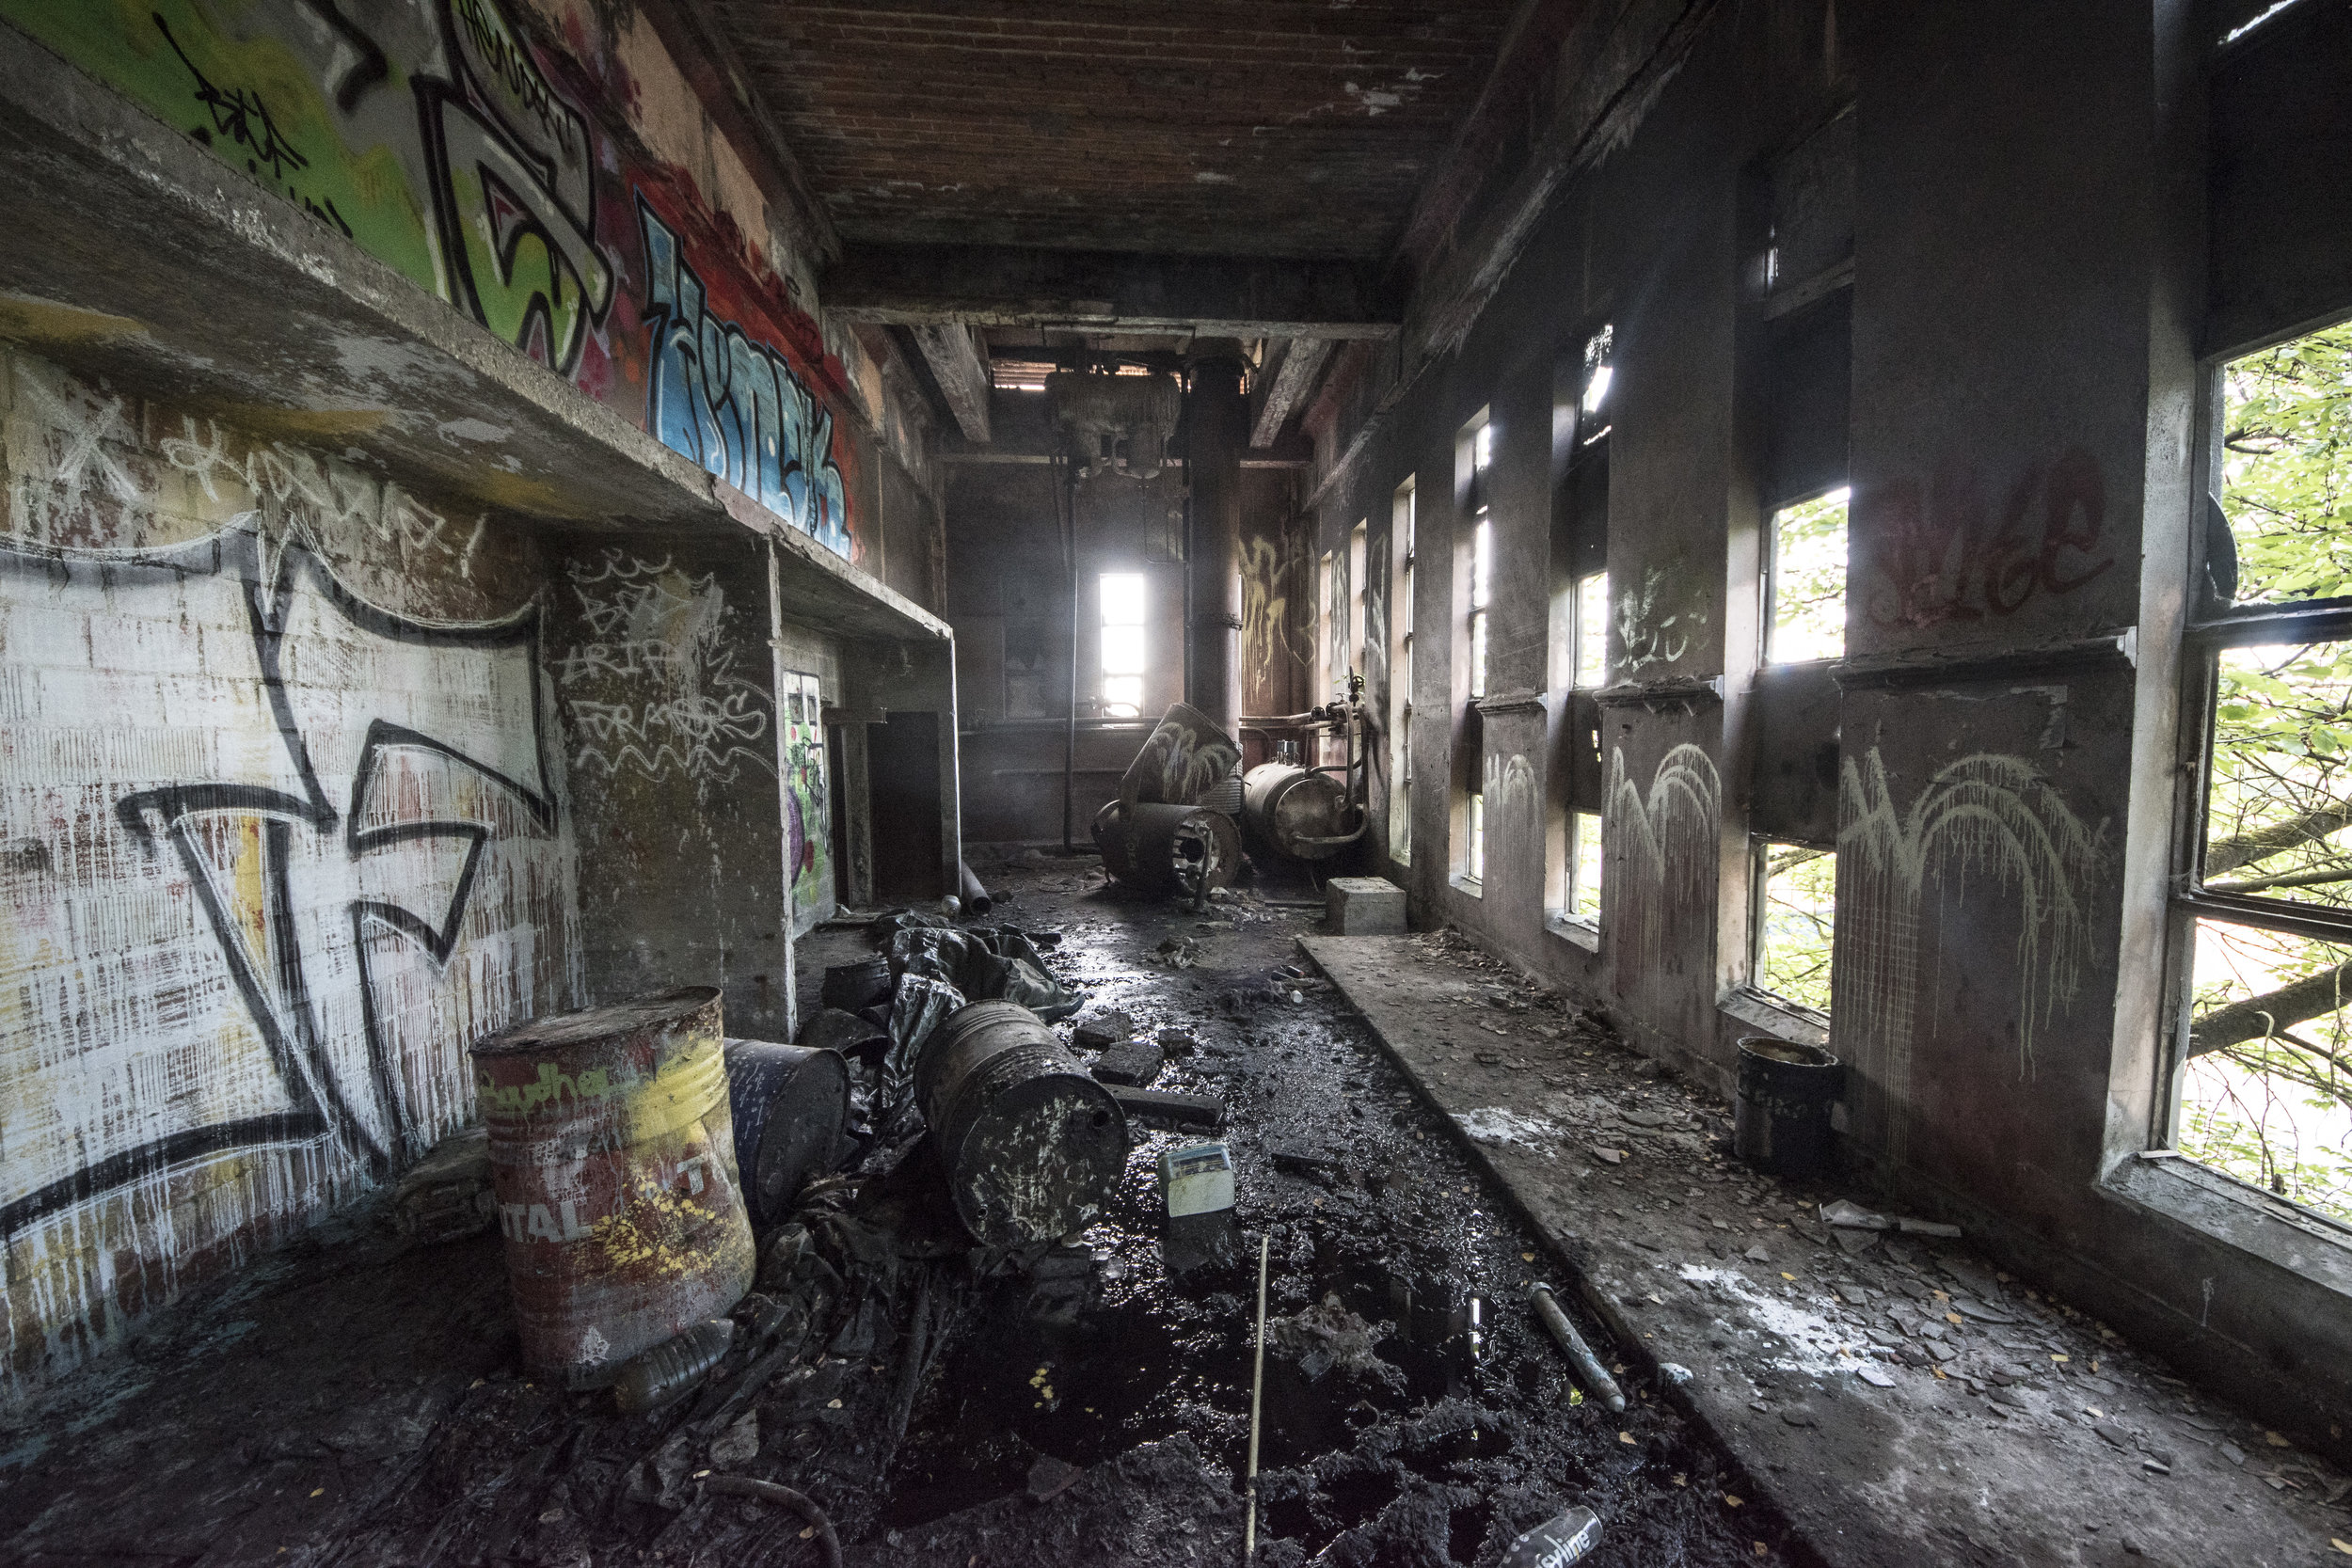 Carolo Beton - Abandoned Concrete Factory - This abandoned concrete plant was built on the location of the site n°2 of the